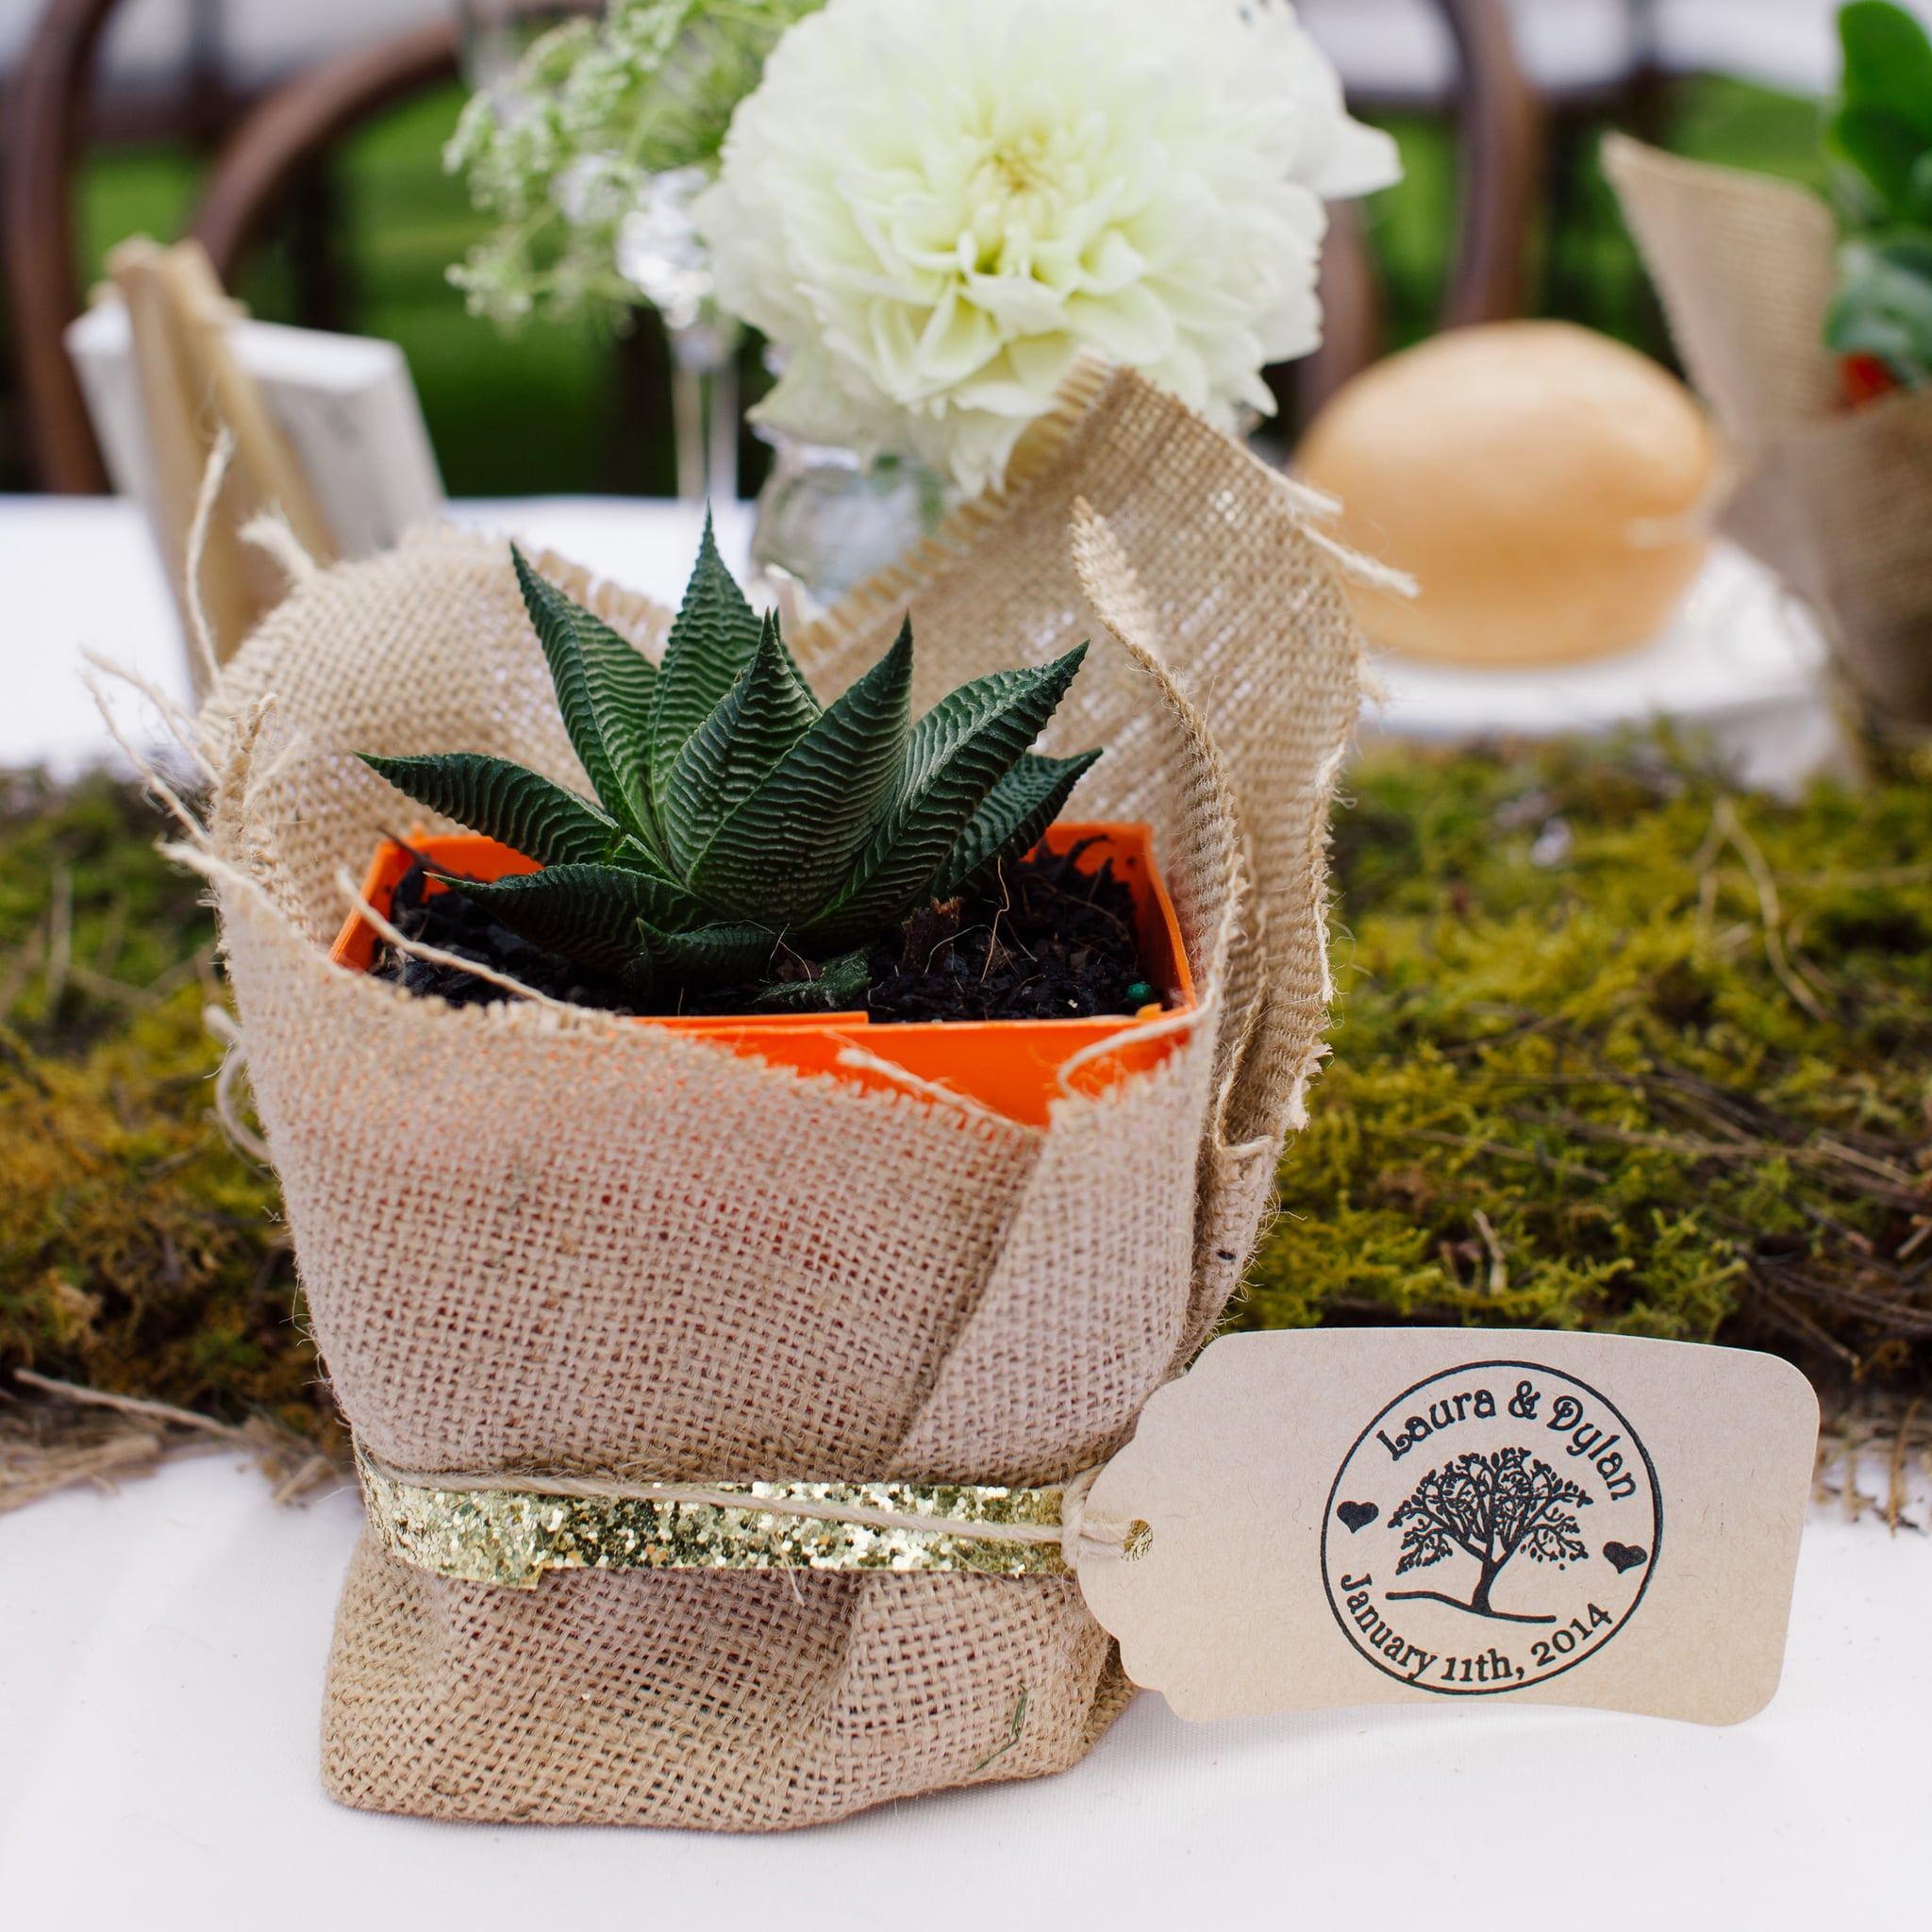 Wedding favors people will use popsugar smart living junglespirit